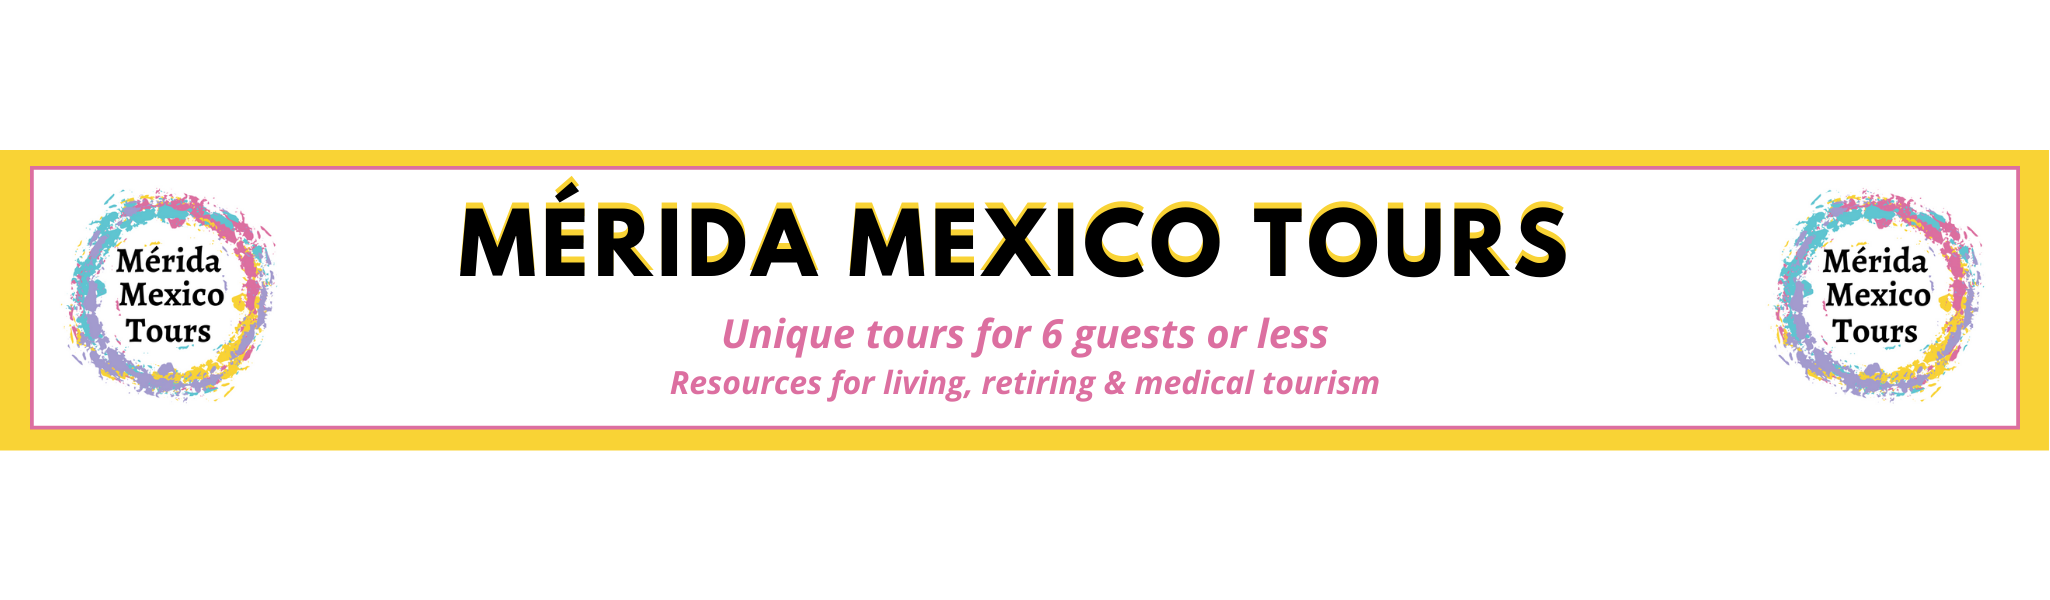 Life in Mérida Experiences: Unique Experiences for up to 4 Guests